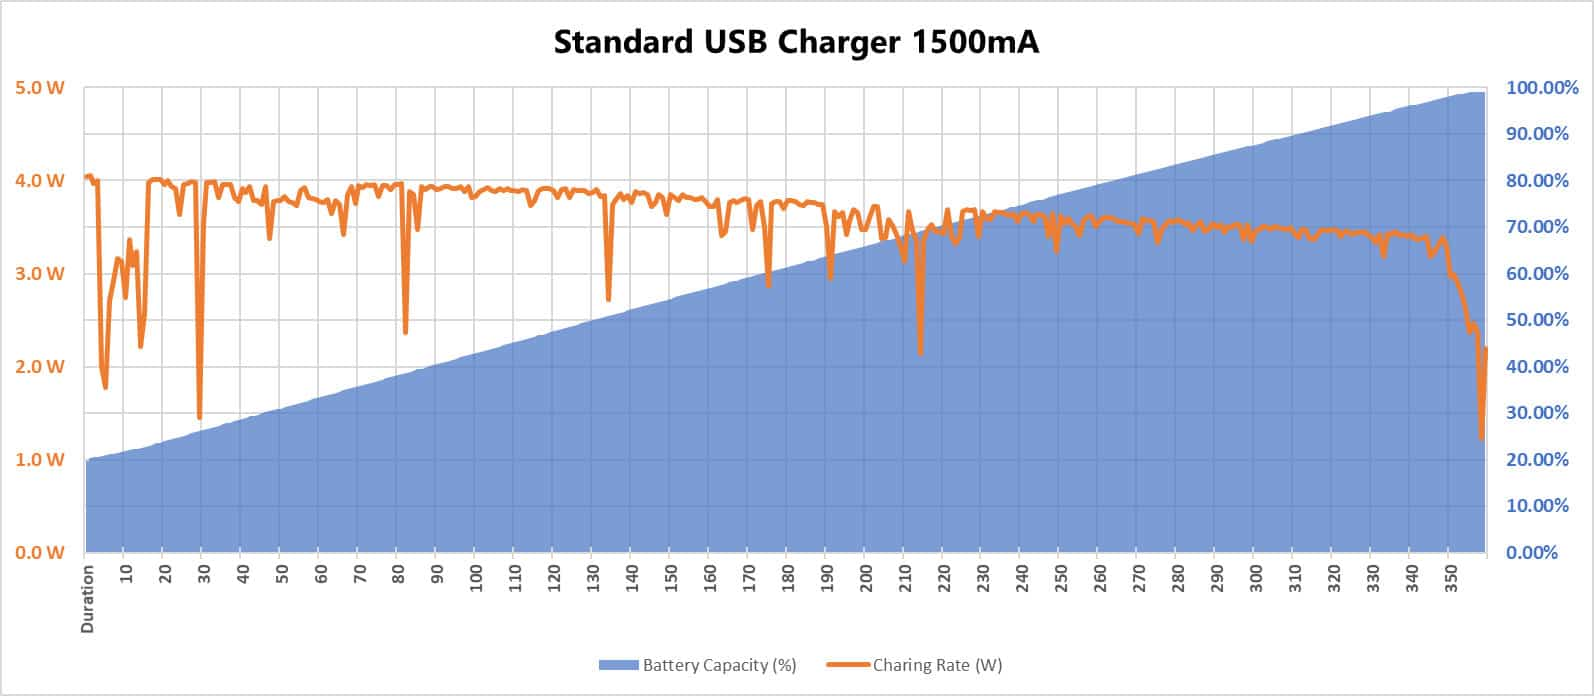 Sony 1500mA charging rate